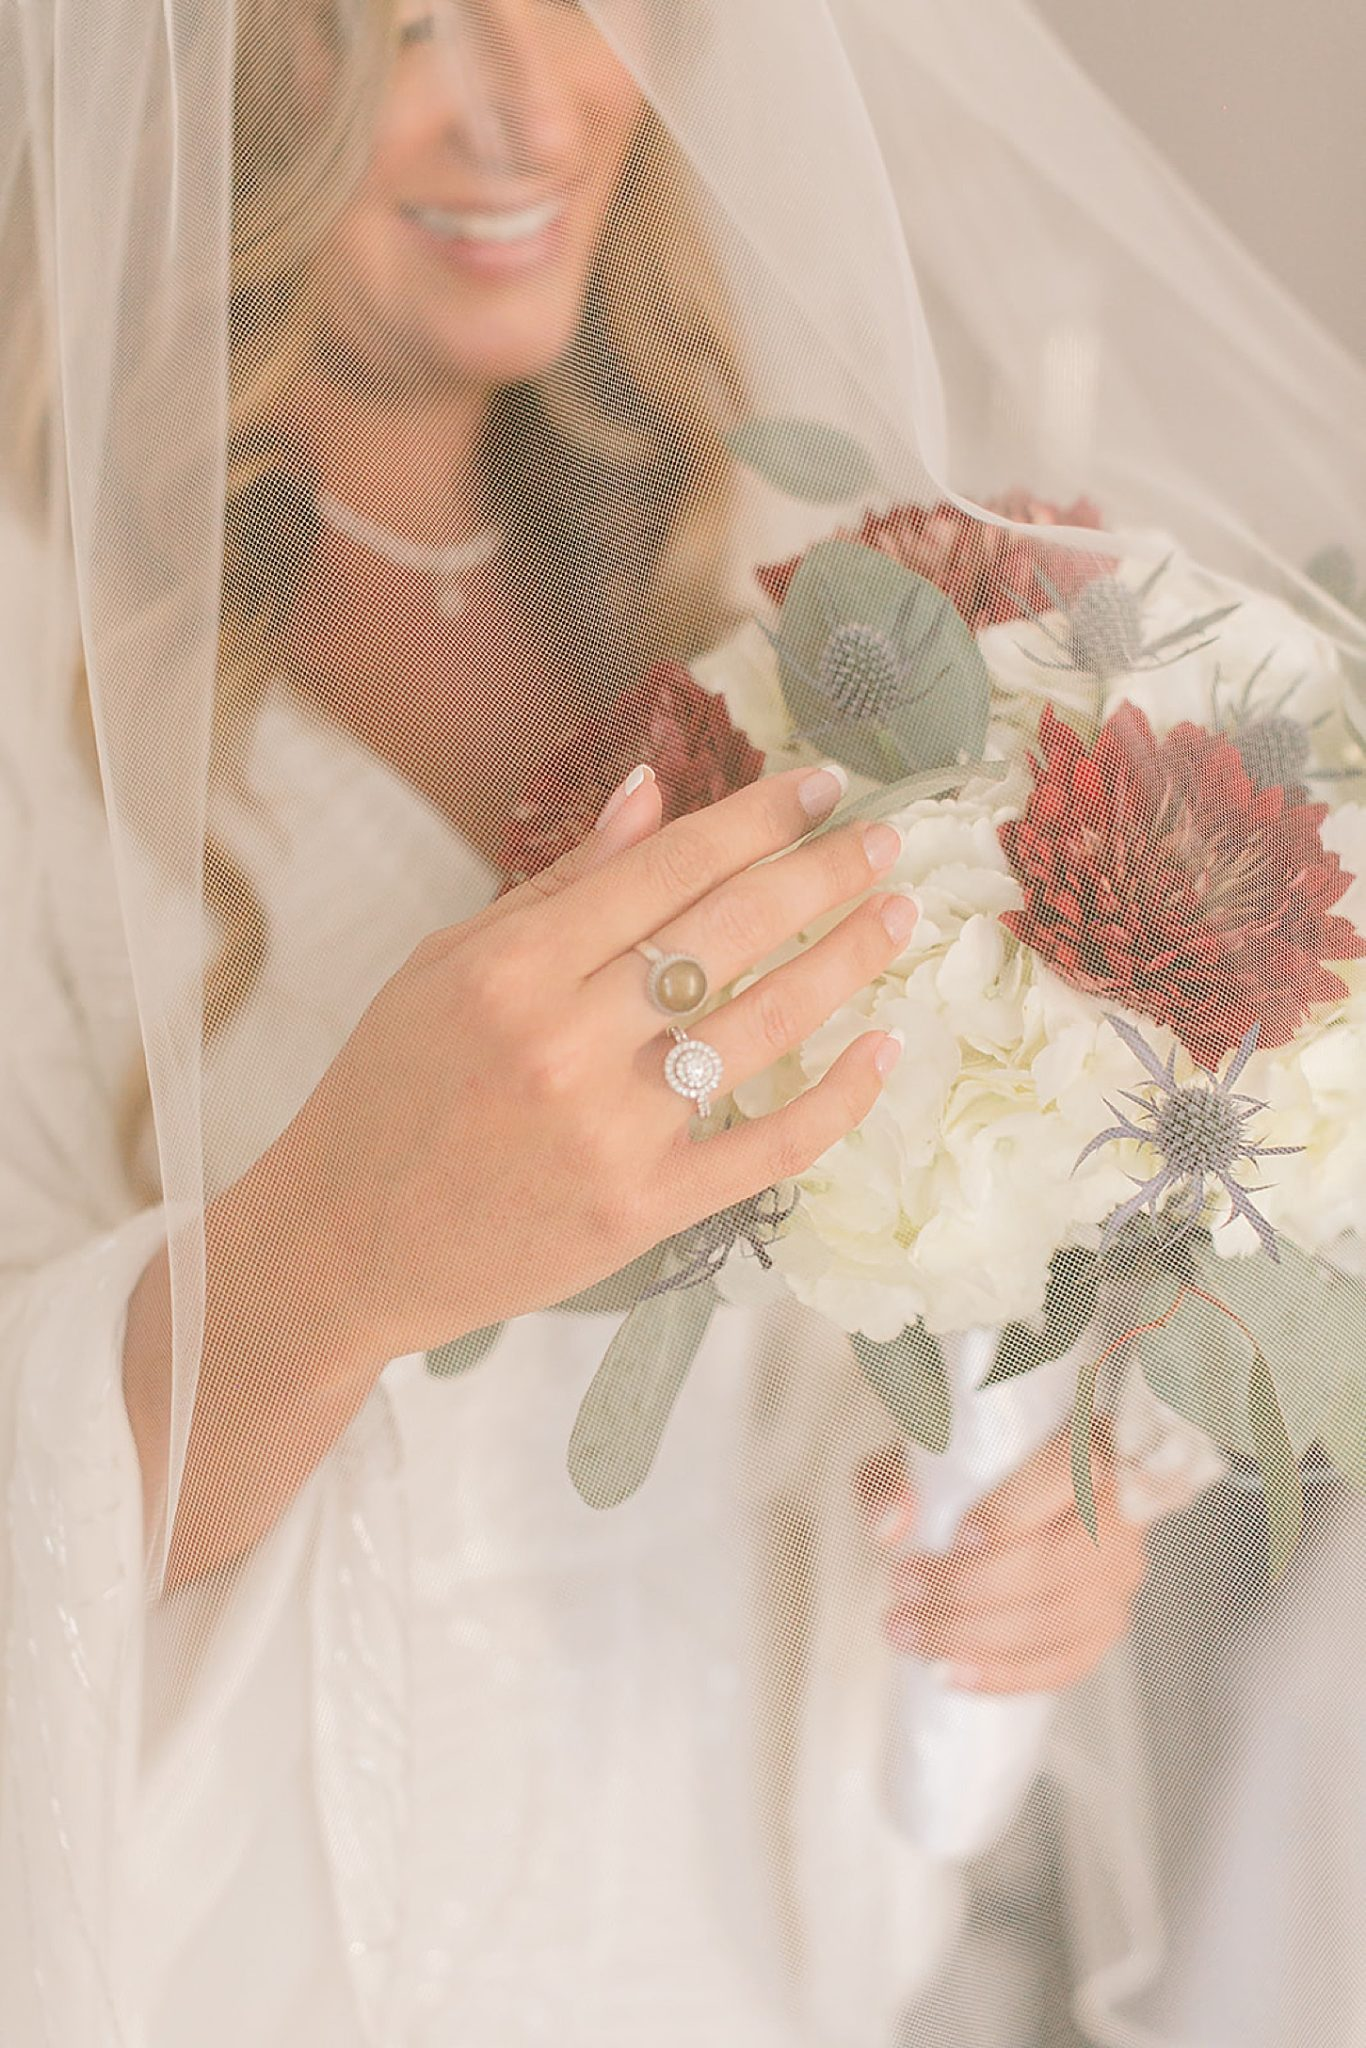 Cape May Intimate Wedding Photography by Magdalena Studios 0003 scaled